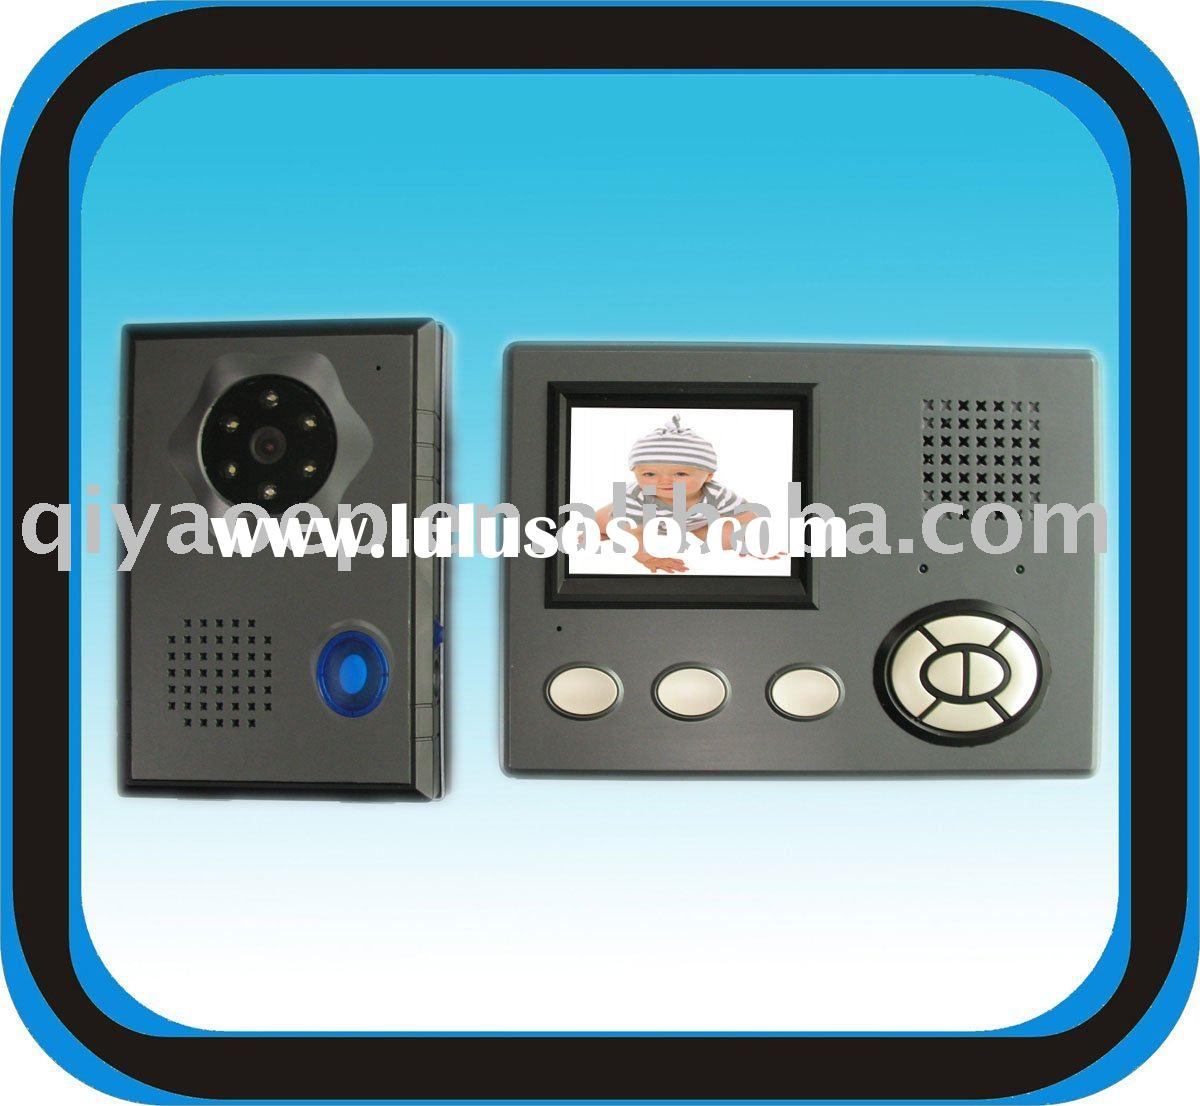 Wireless 3.5 Inch Video Intercom Door Phone Villa/Apartment Video Doorbell Good Price Nice Quality